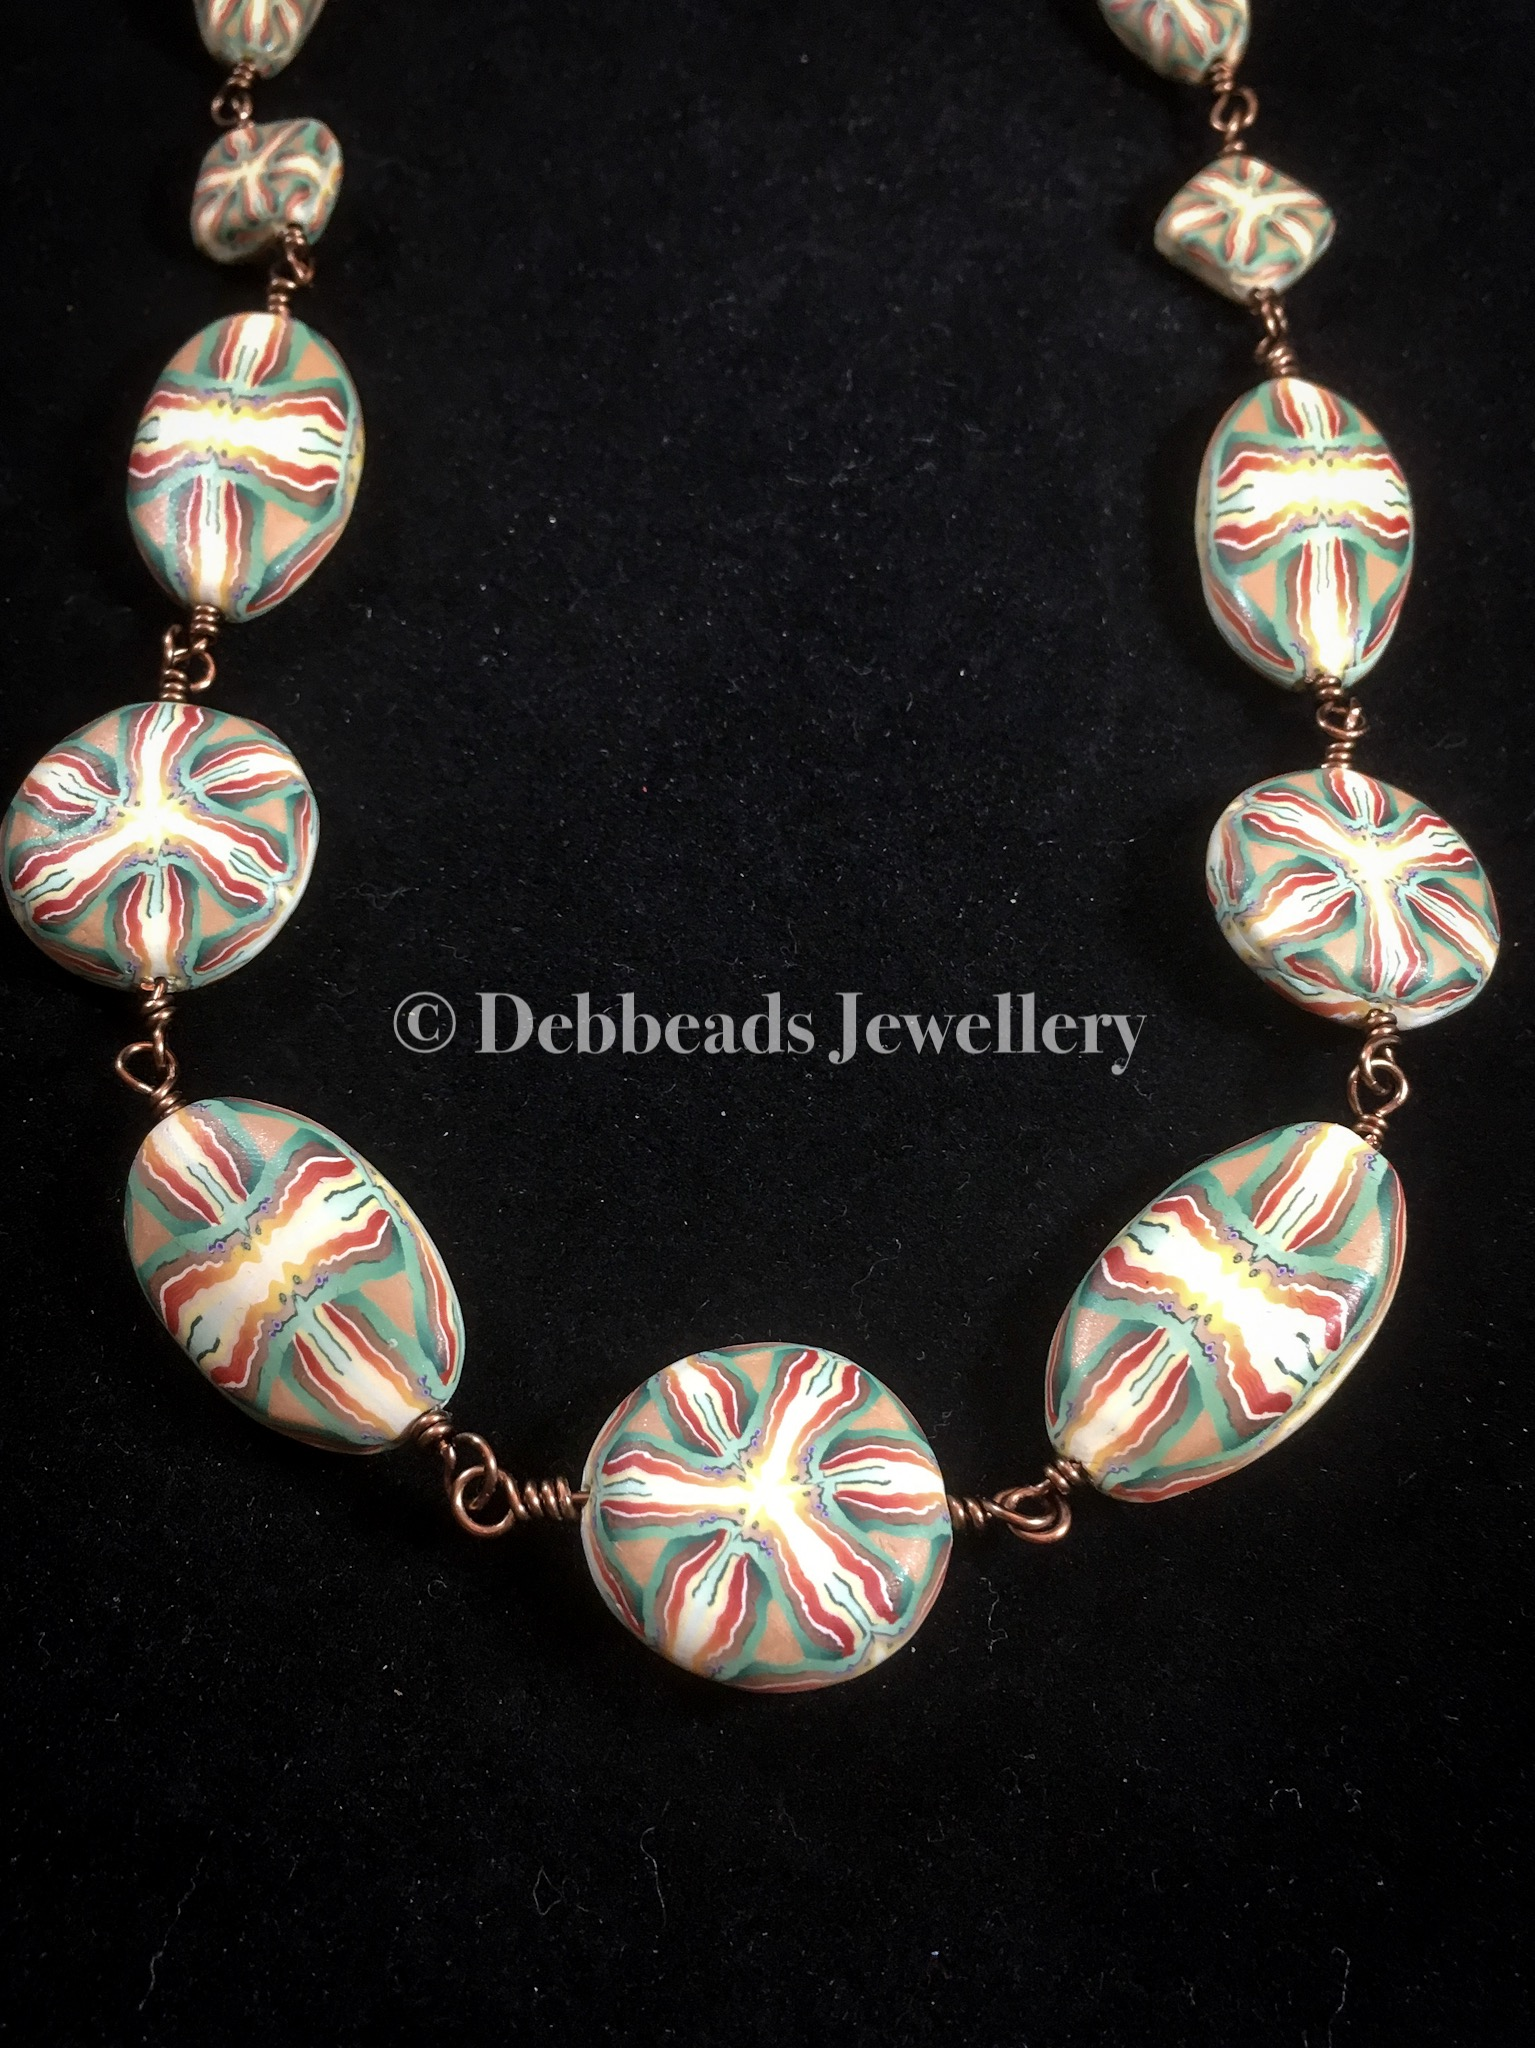 Celtic knot beaded necklace - continuous links